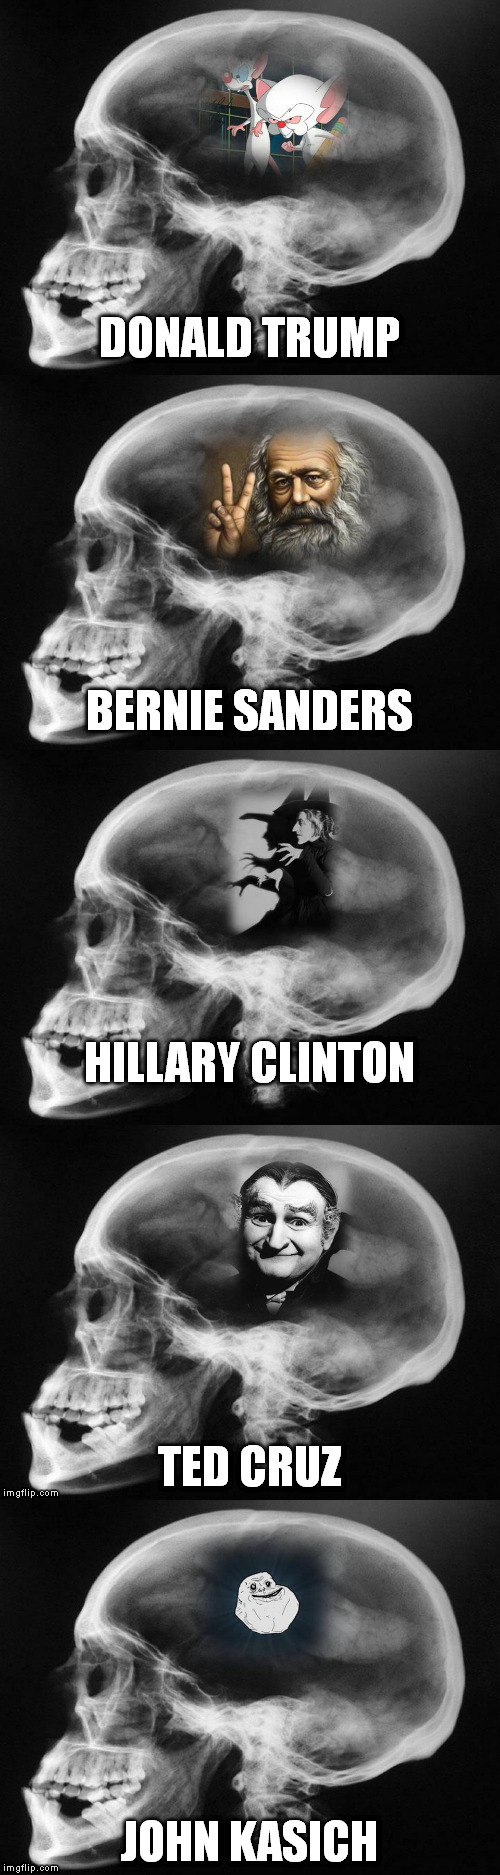 Head X-rays of the Presidential Contenders | JOHN KASICH | image tagged in memes | made w/ Imgflip meme maker